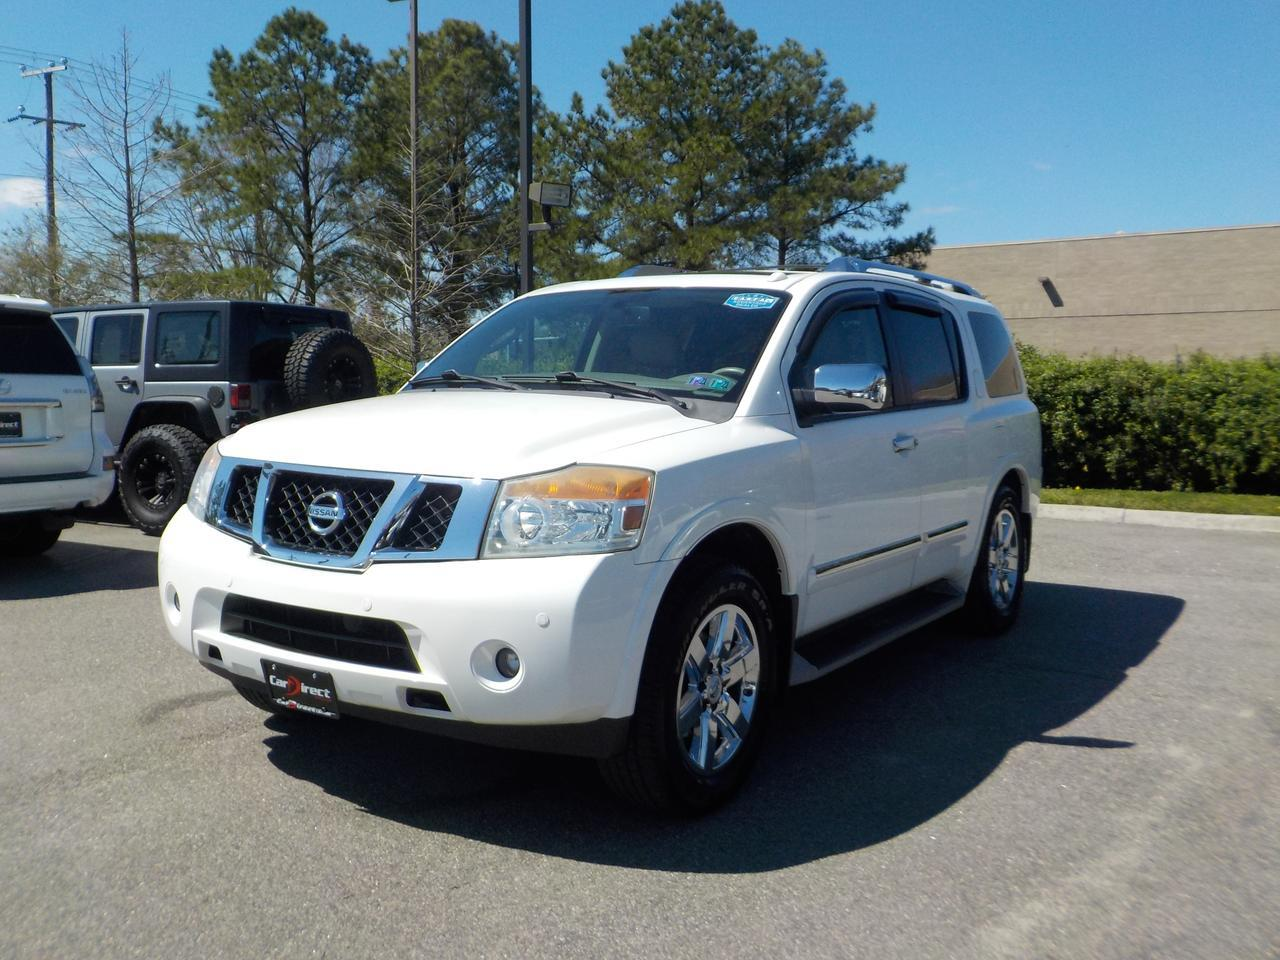 2010 NISSAN ARMADA PLATINUM 4X4, LEATHER, 3RD ROW SEATING, BOSE PREMIUM SOUND, DVD, NAVIGATION, SUNROOF!! Virginia Beach VA